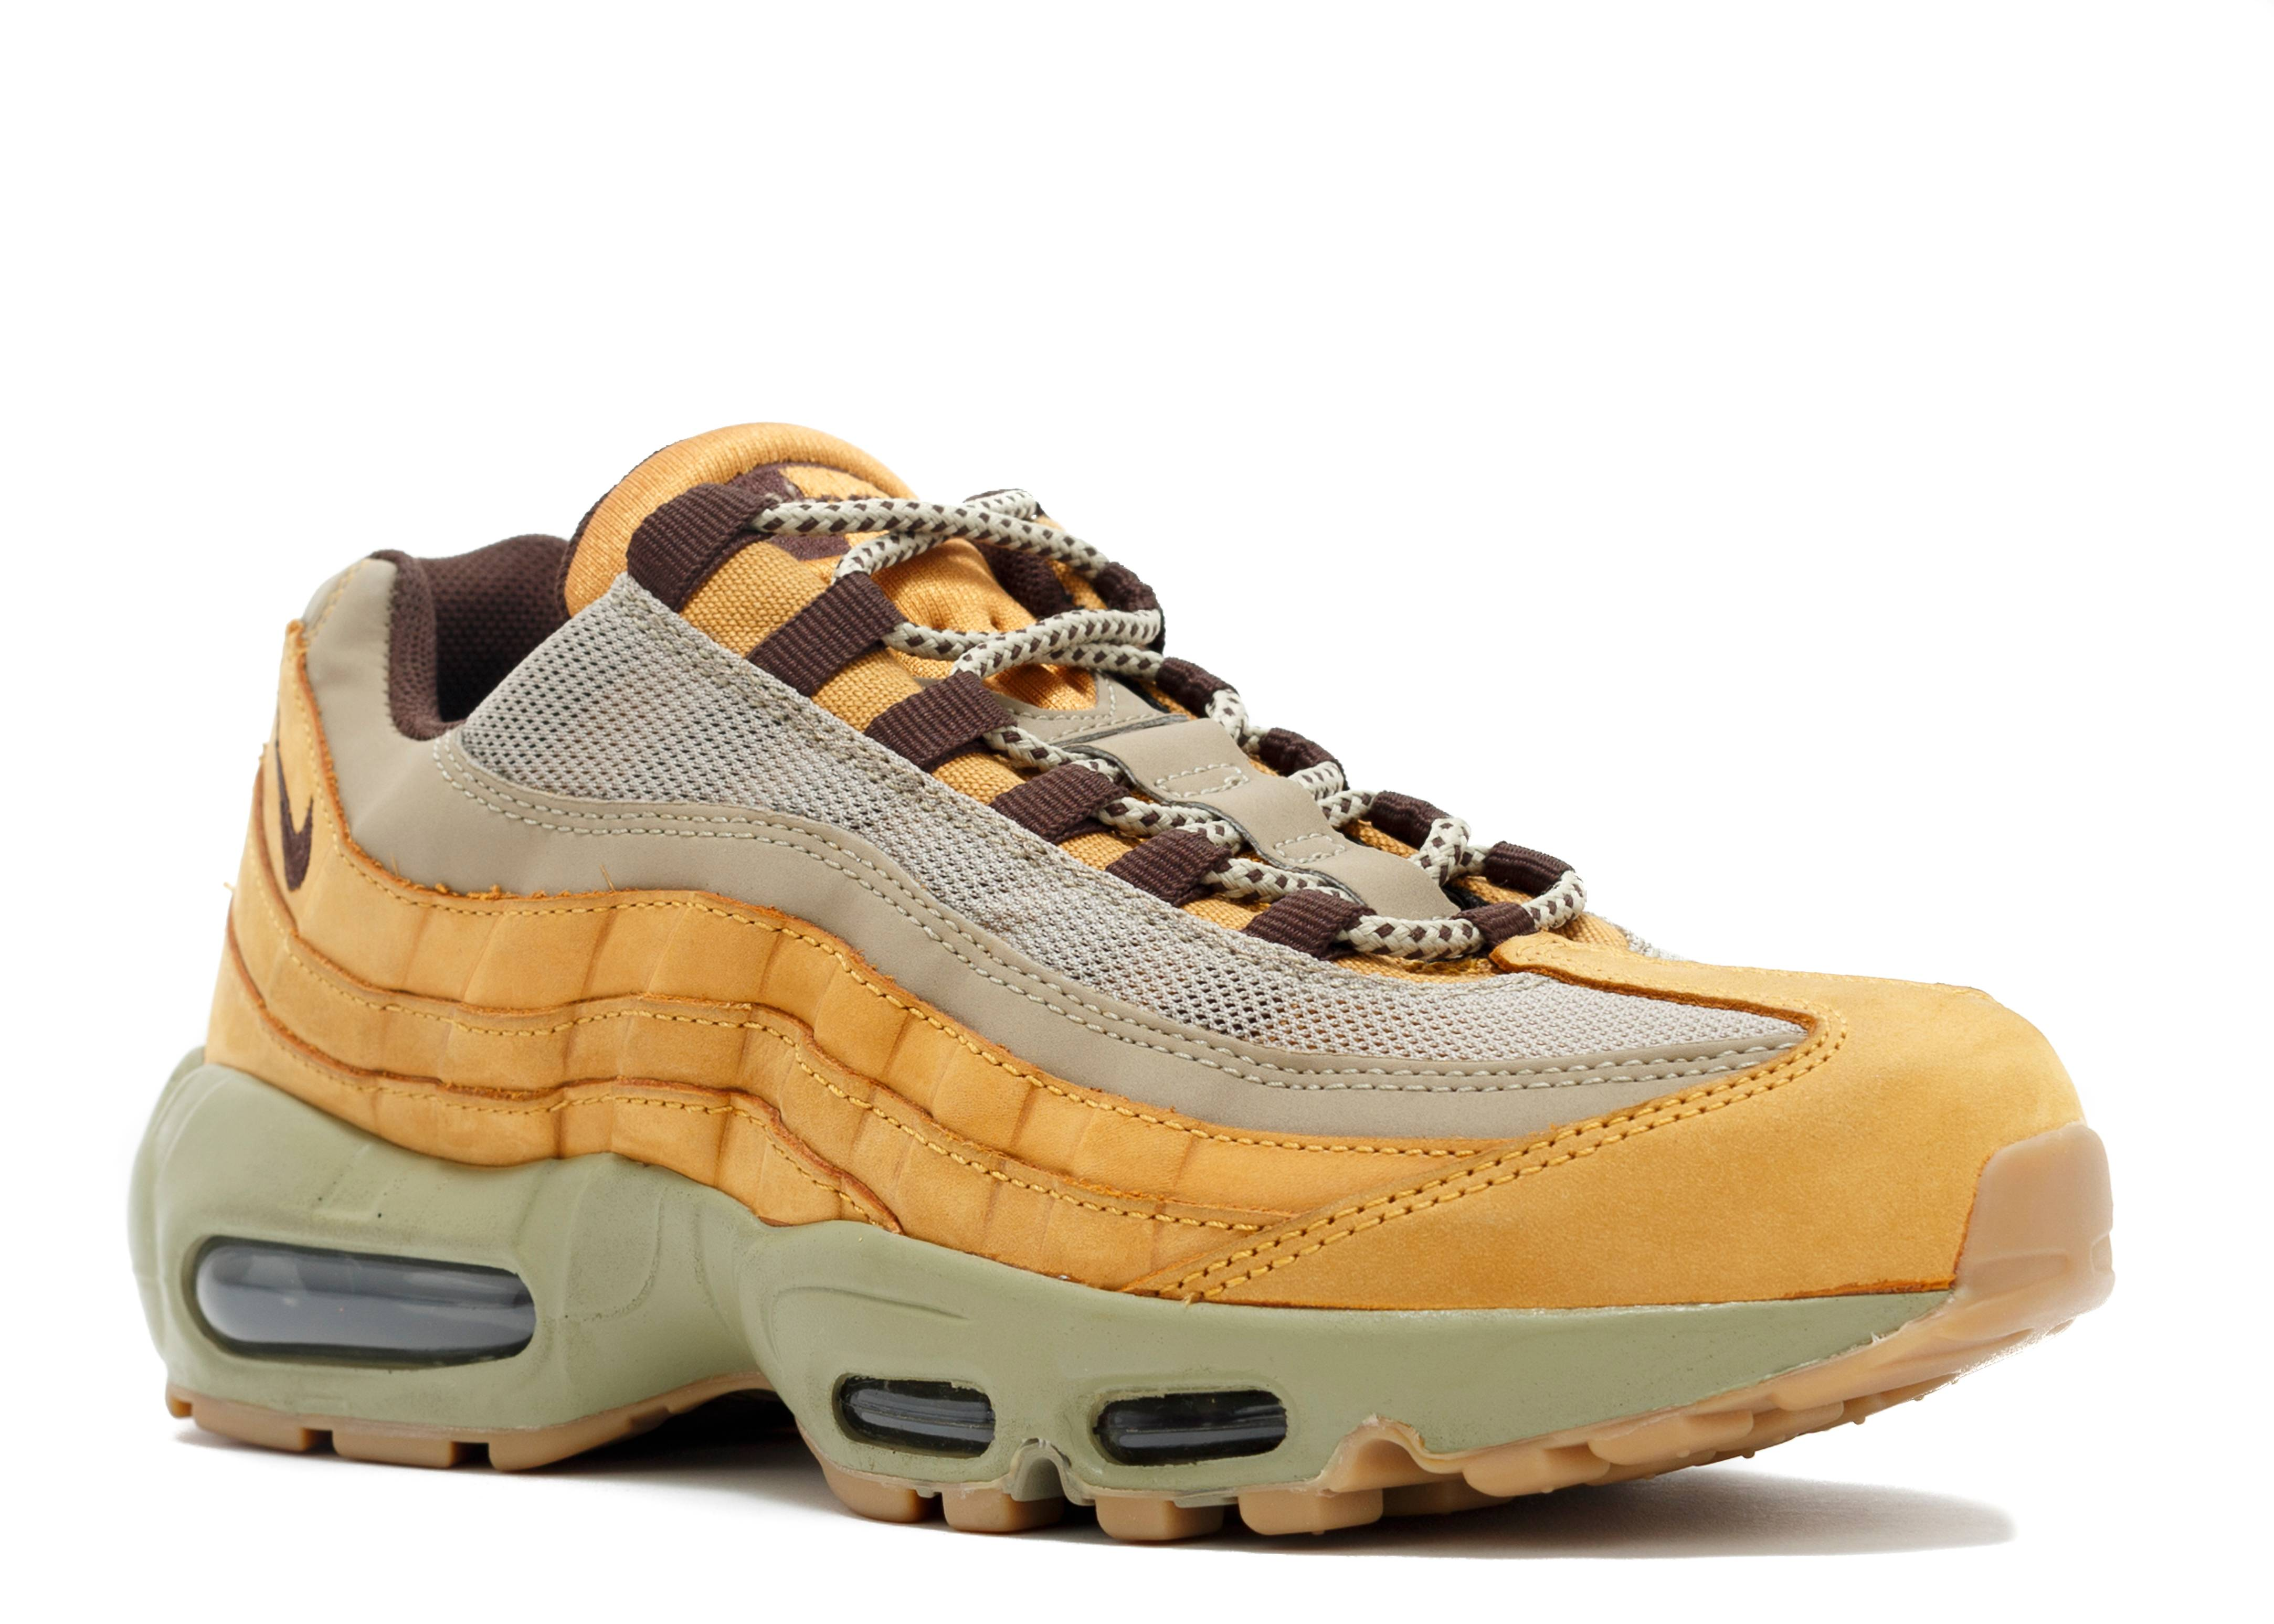 air max 95 prm wheat nike 538416 700 bronze. Black Bedroom Furniture Sets. Home Design Ideas